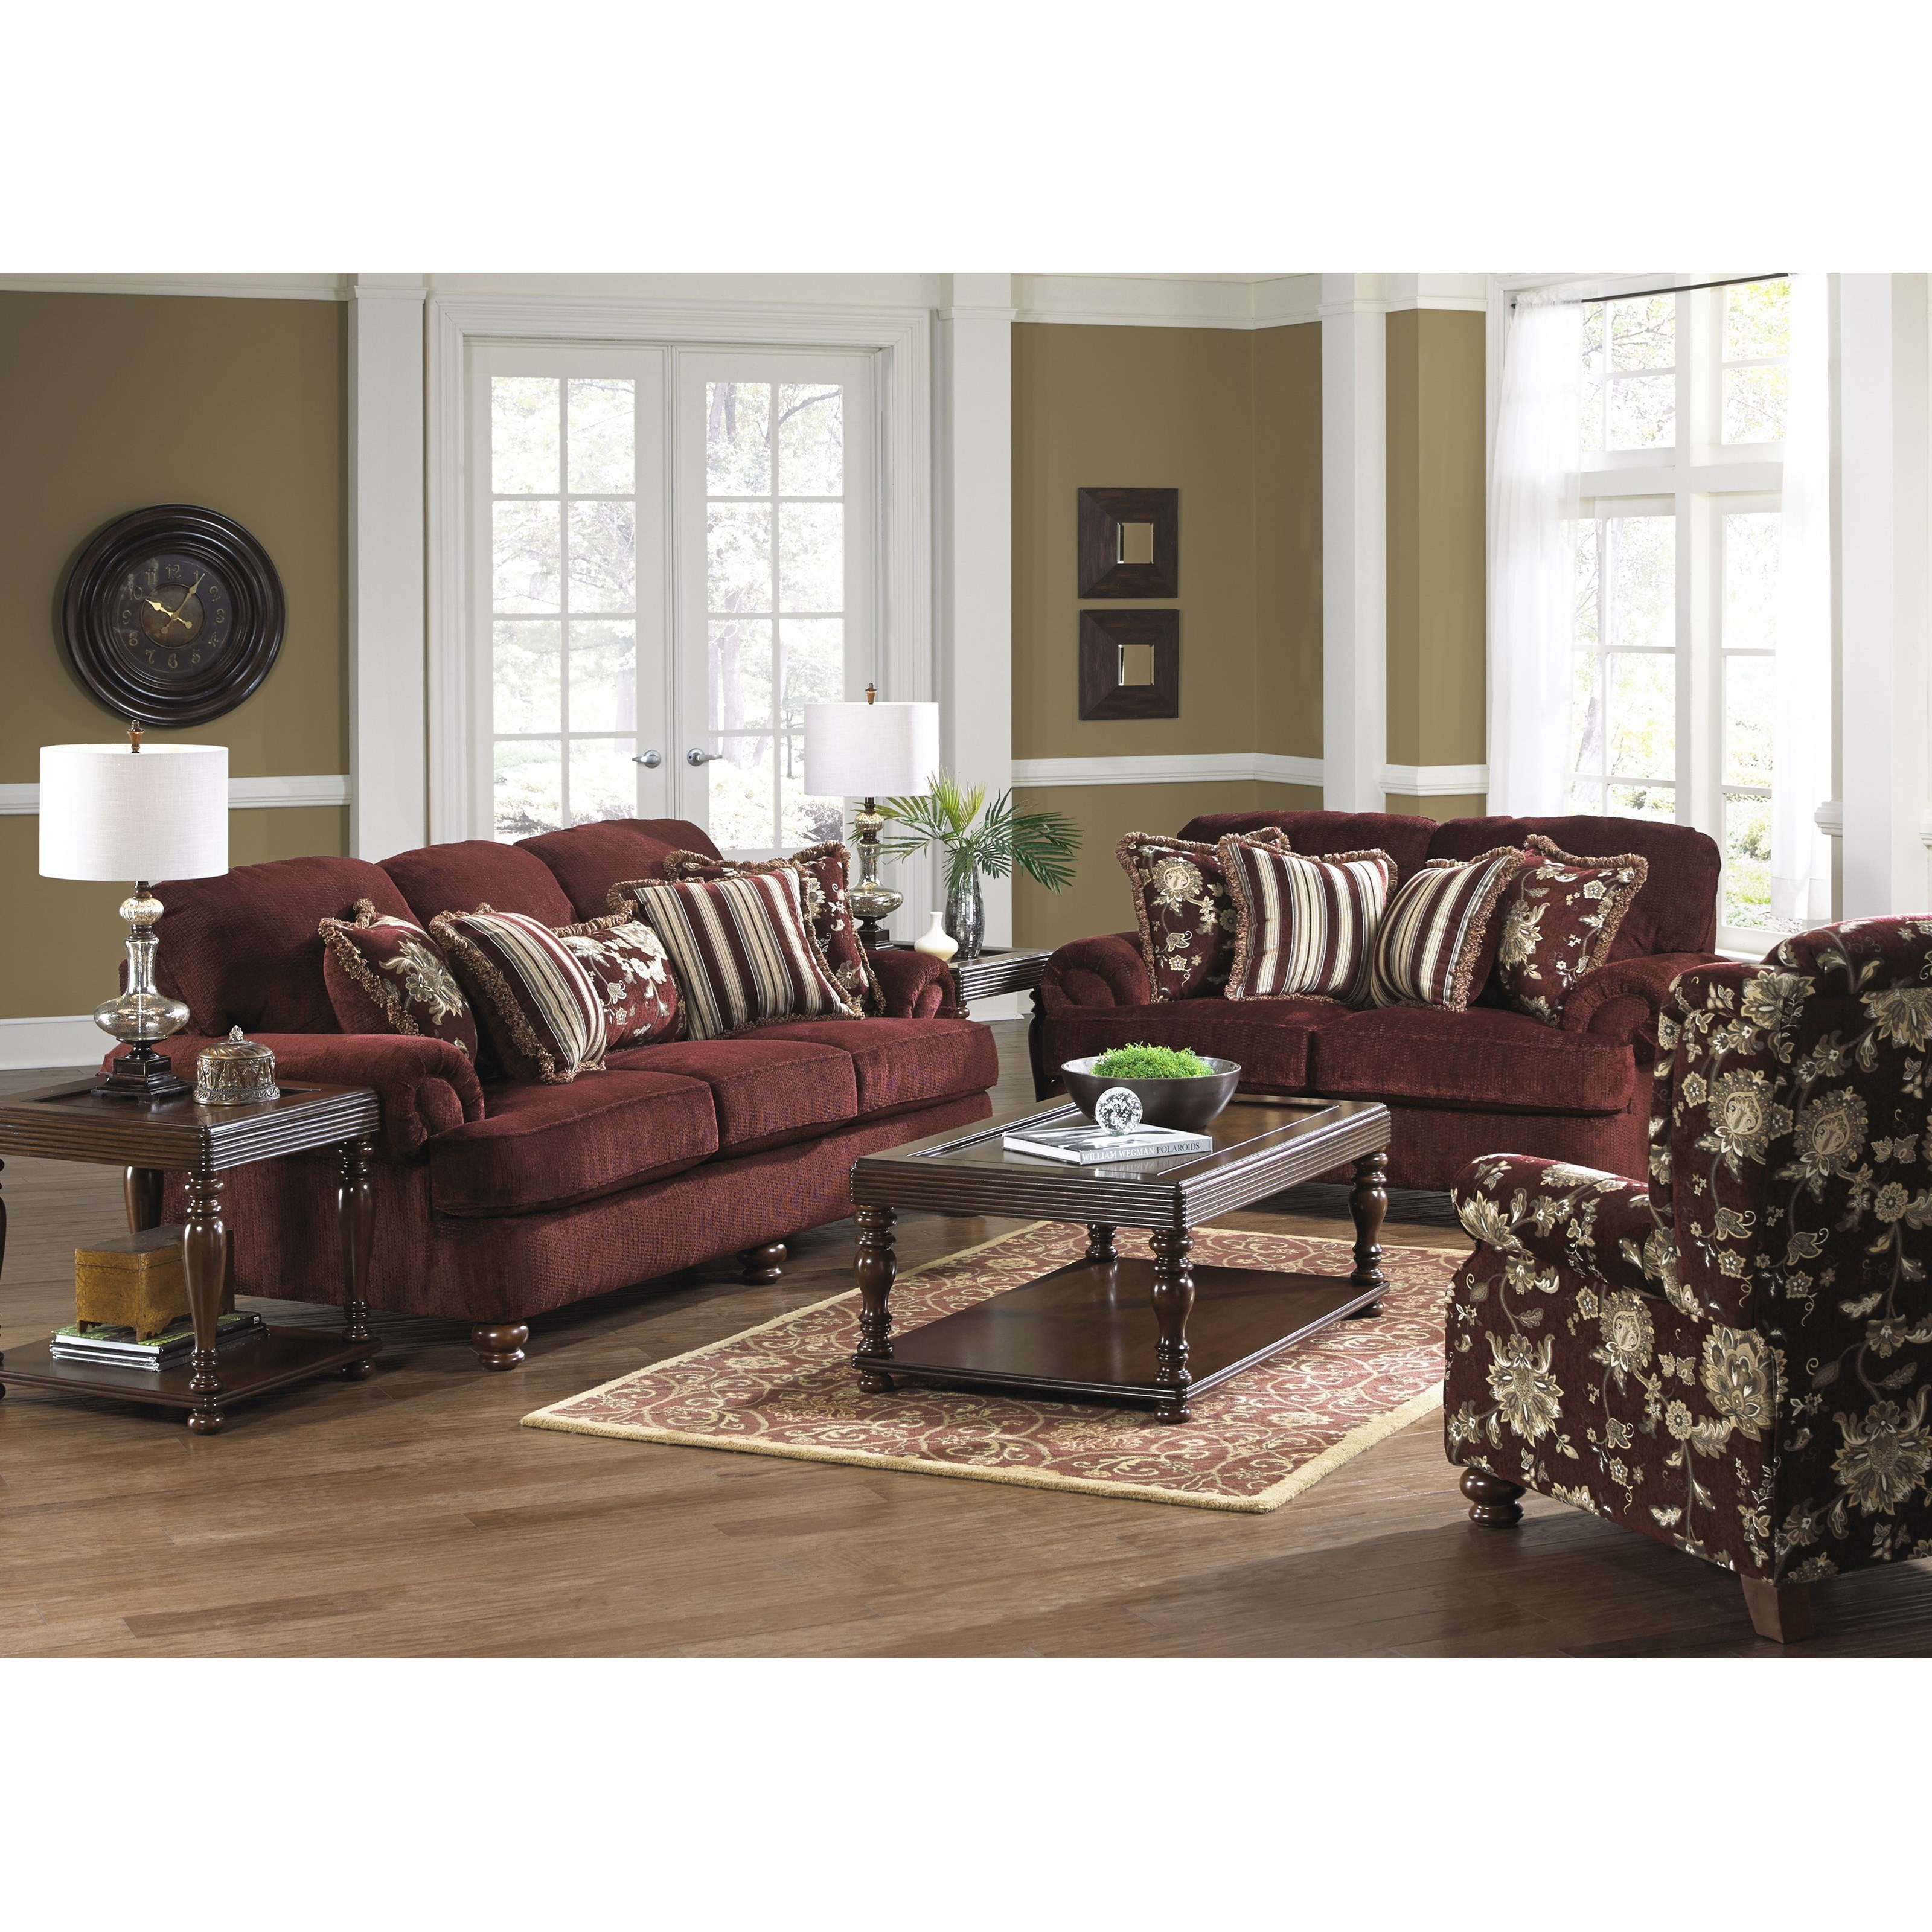 jackson furniture belmont 4347 03 sofa with rolled arms and decorative pillows efo furniture. Black Bedroom Furniture Sets. Home Design Ideas